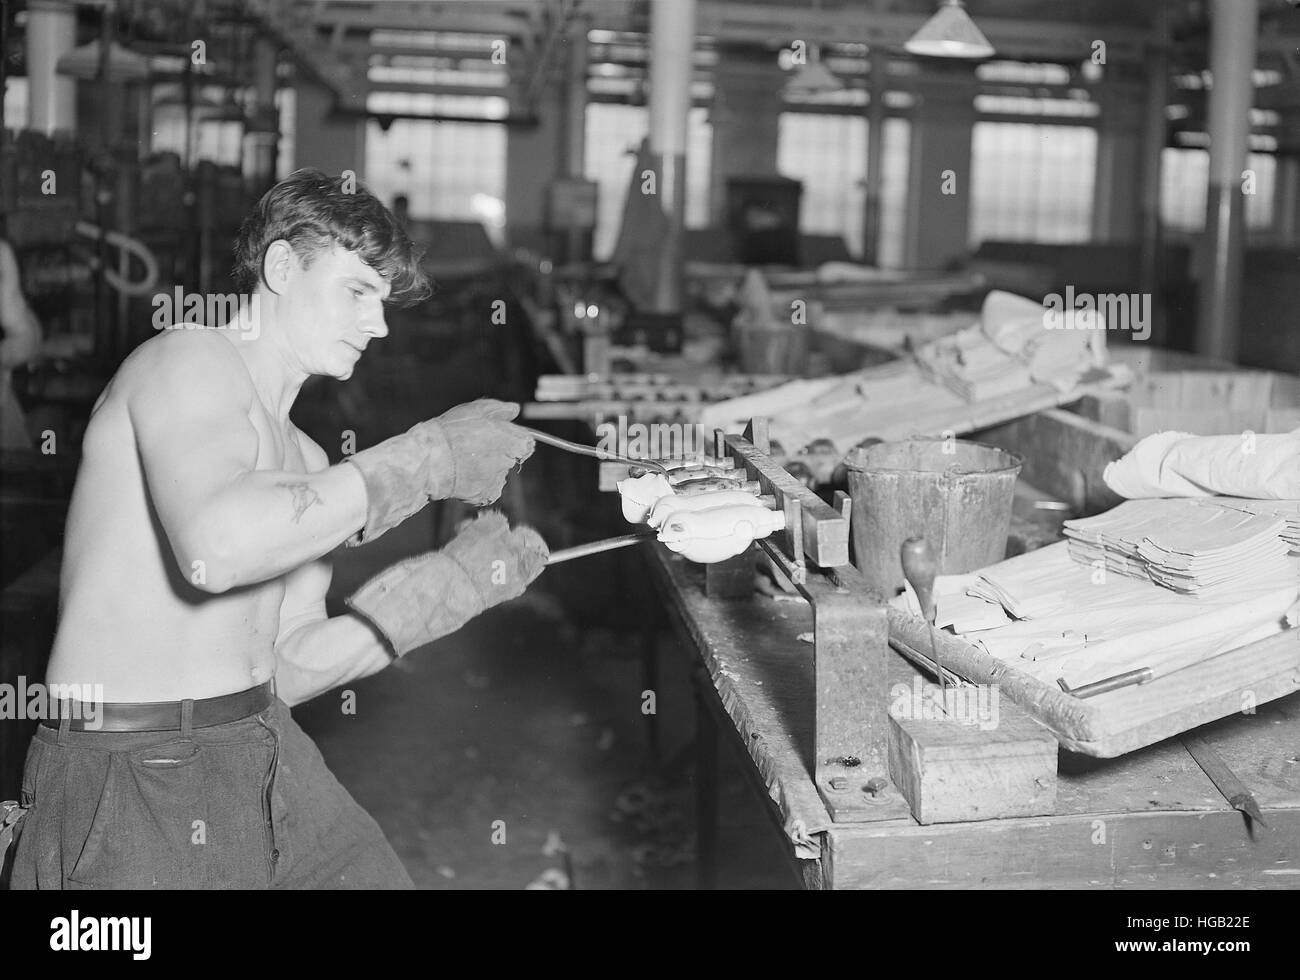 Worker stripping rubber bodies off core-bars while making dolls, 1936. - Stock Image